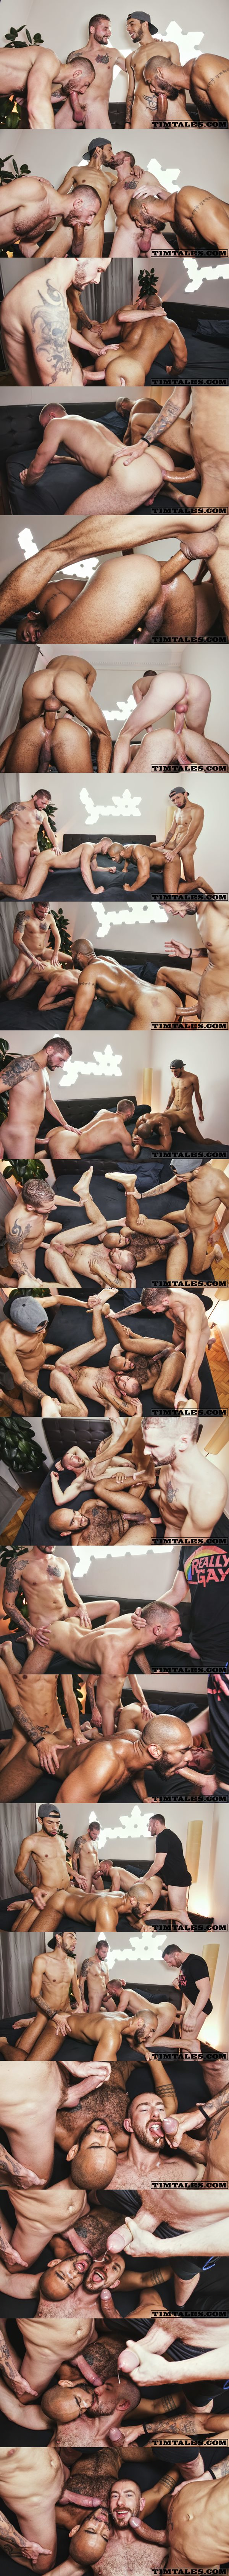 Hung power tops Franklin Acevedo, Ethan Metz and Tim Kruger bareback John Thomas and Louis Ricaute until they give two bottom hot facials at Timtales 02